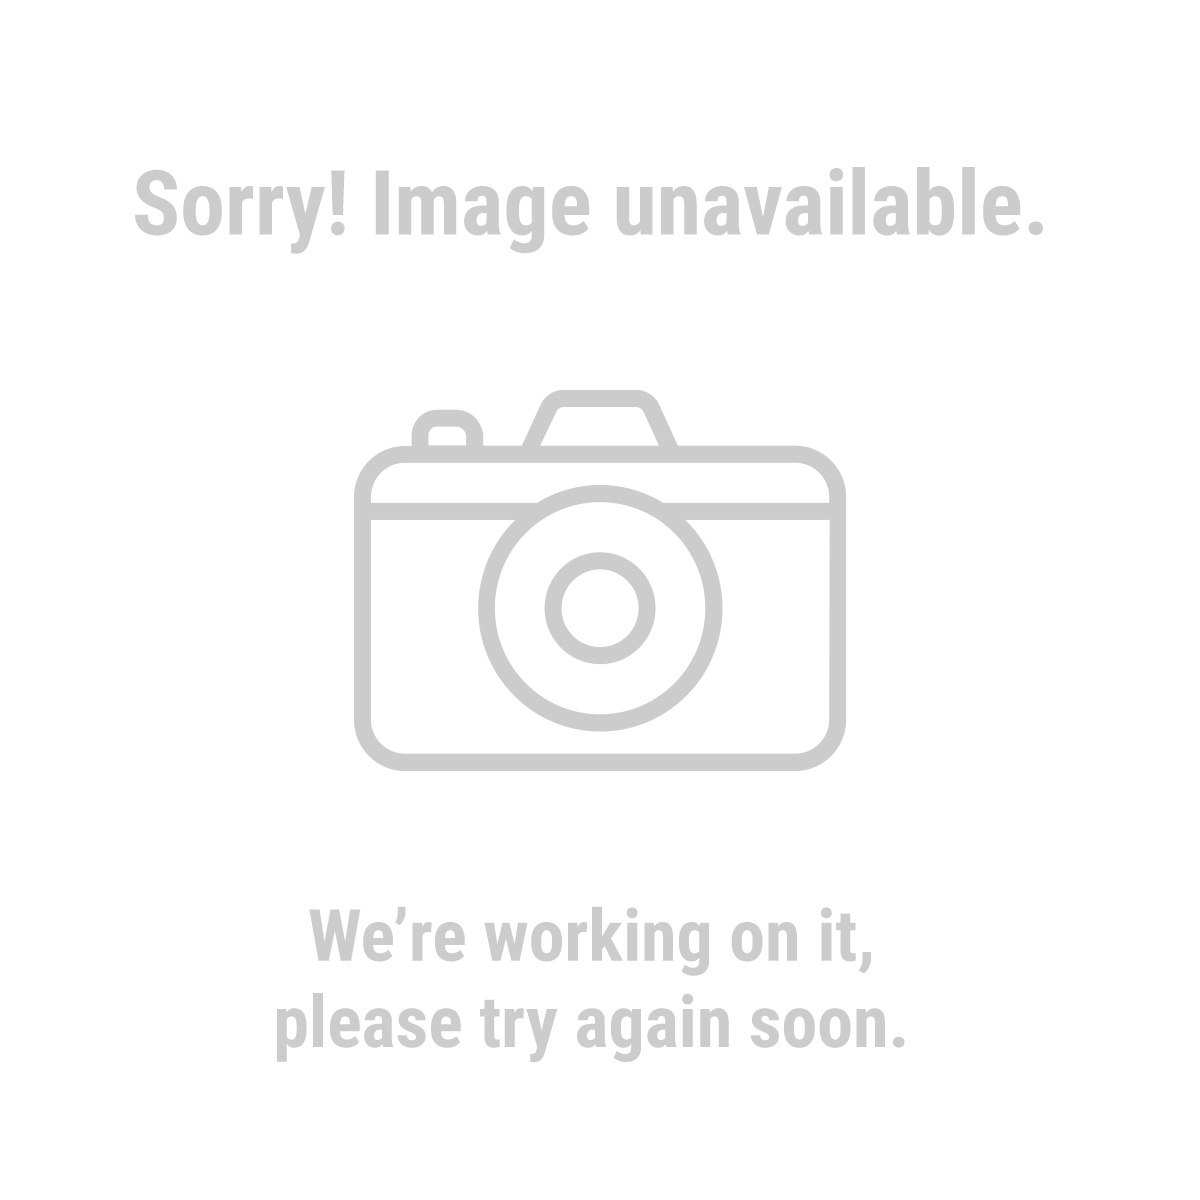 Dust Collector Great Deals On Dust Collectors At Harbor